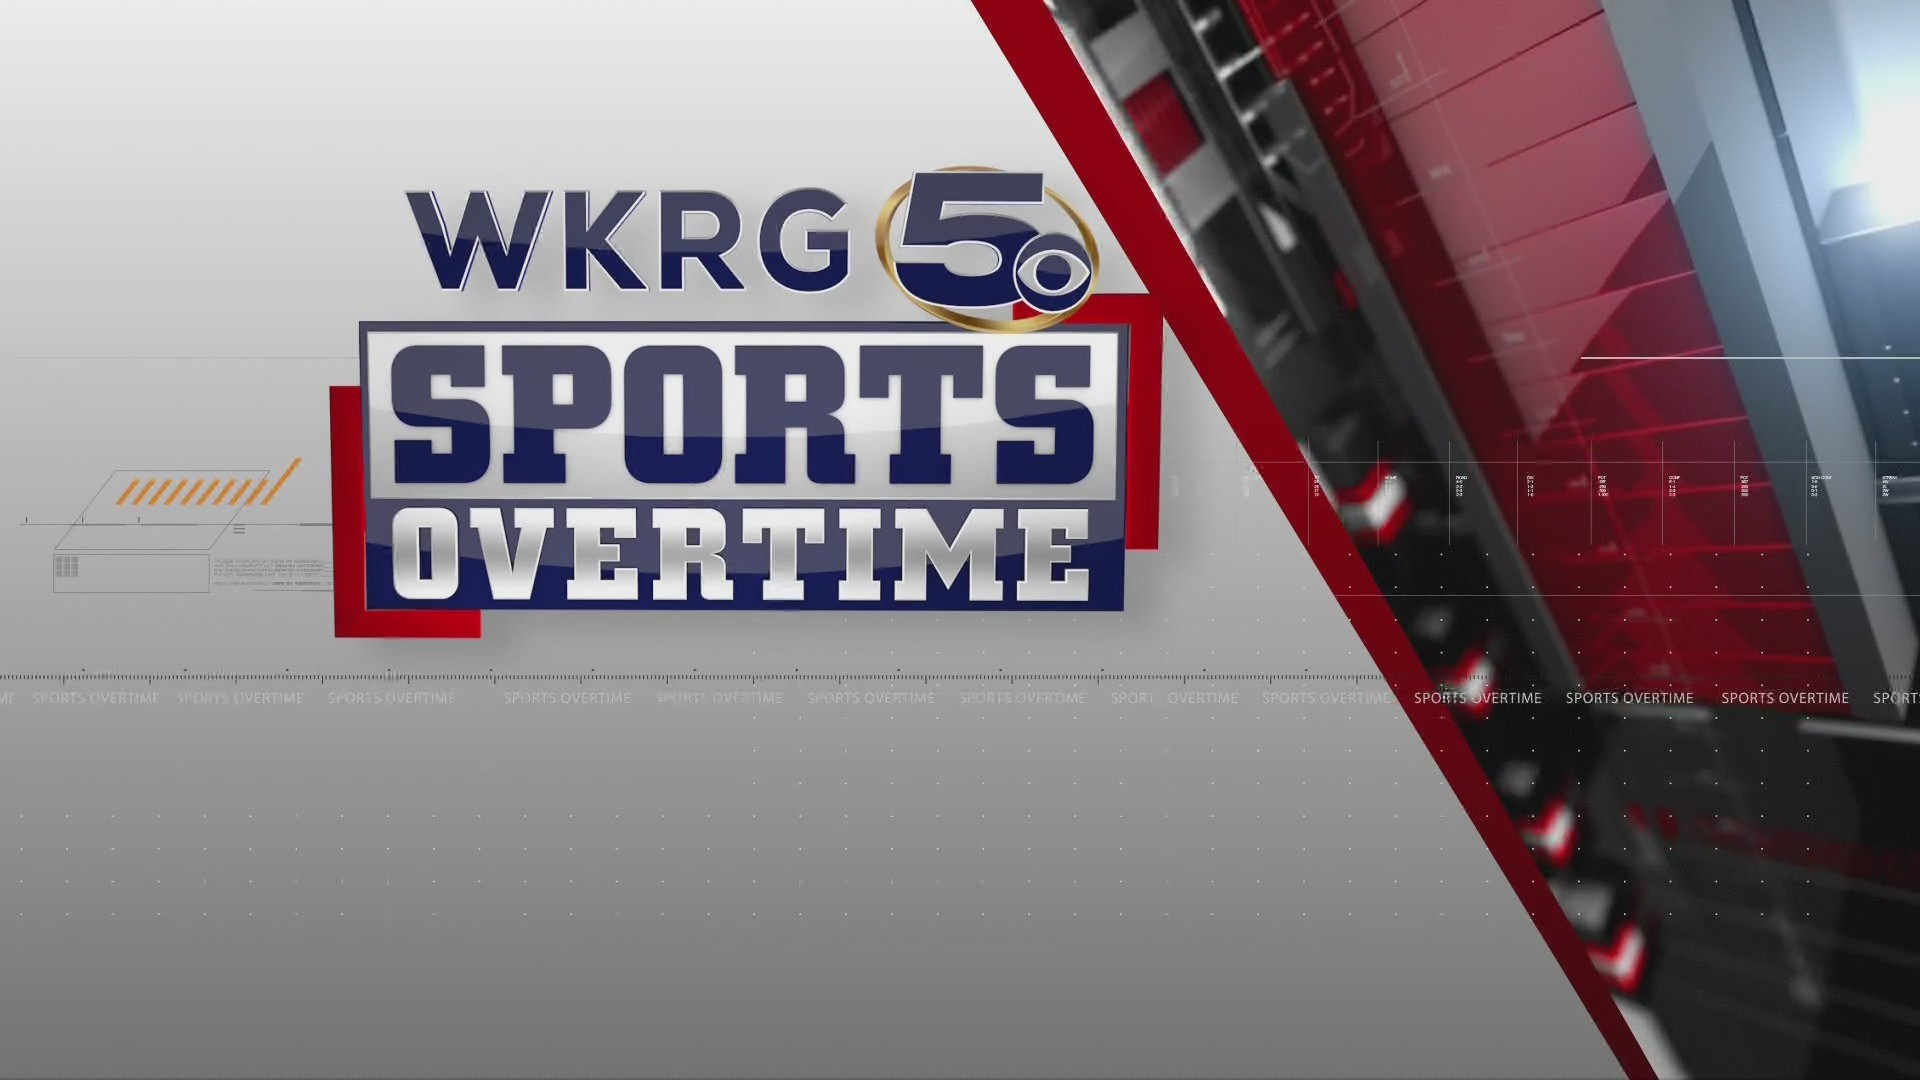 WKRG NEWS 5 - Sports Overtime - 02/10/2019